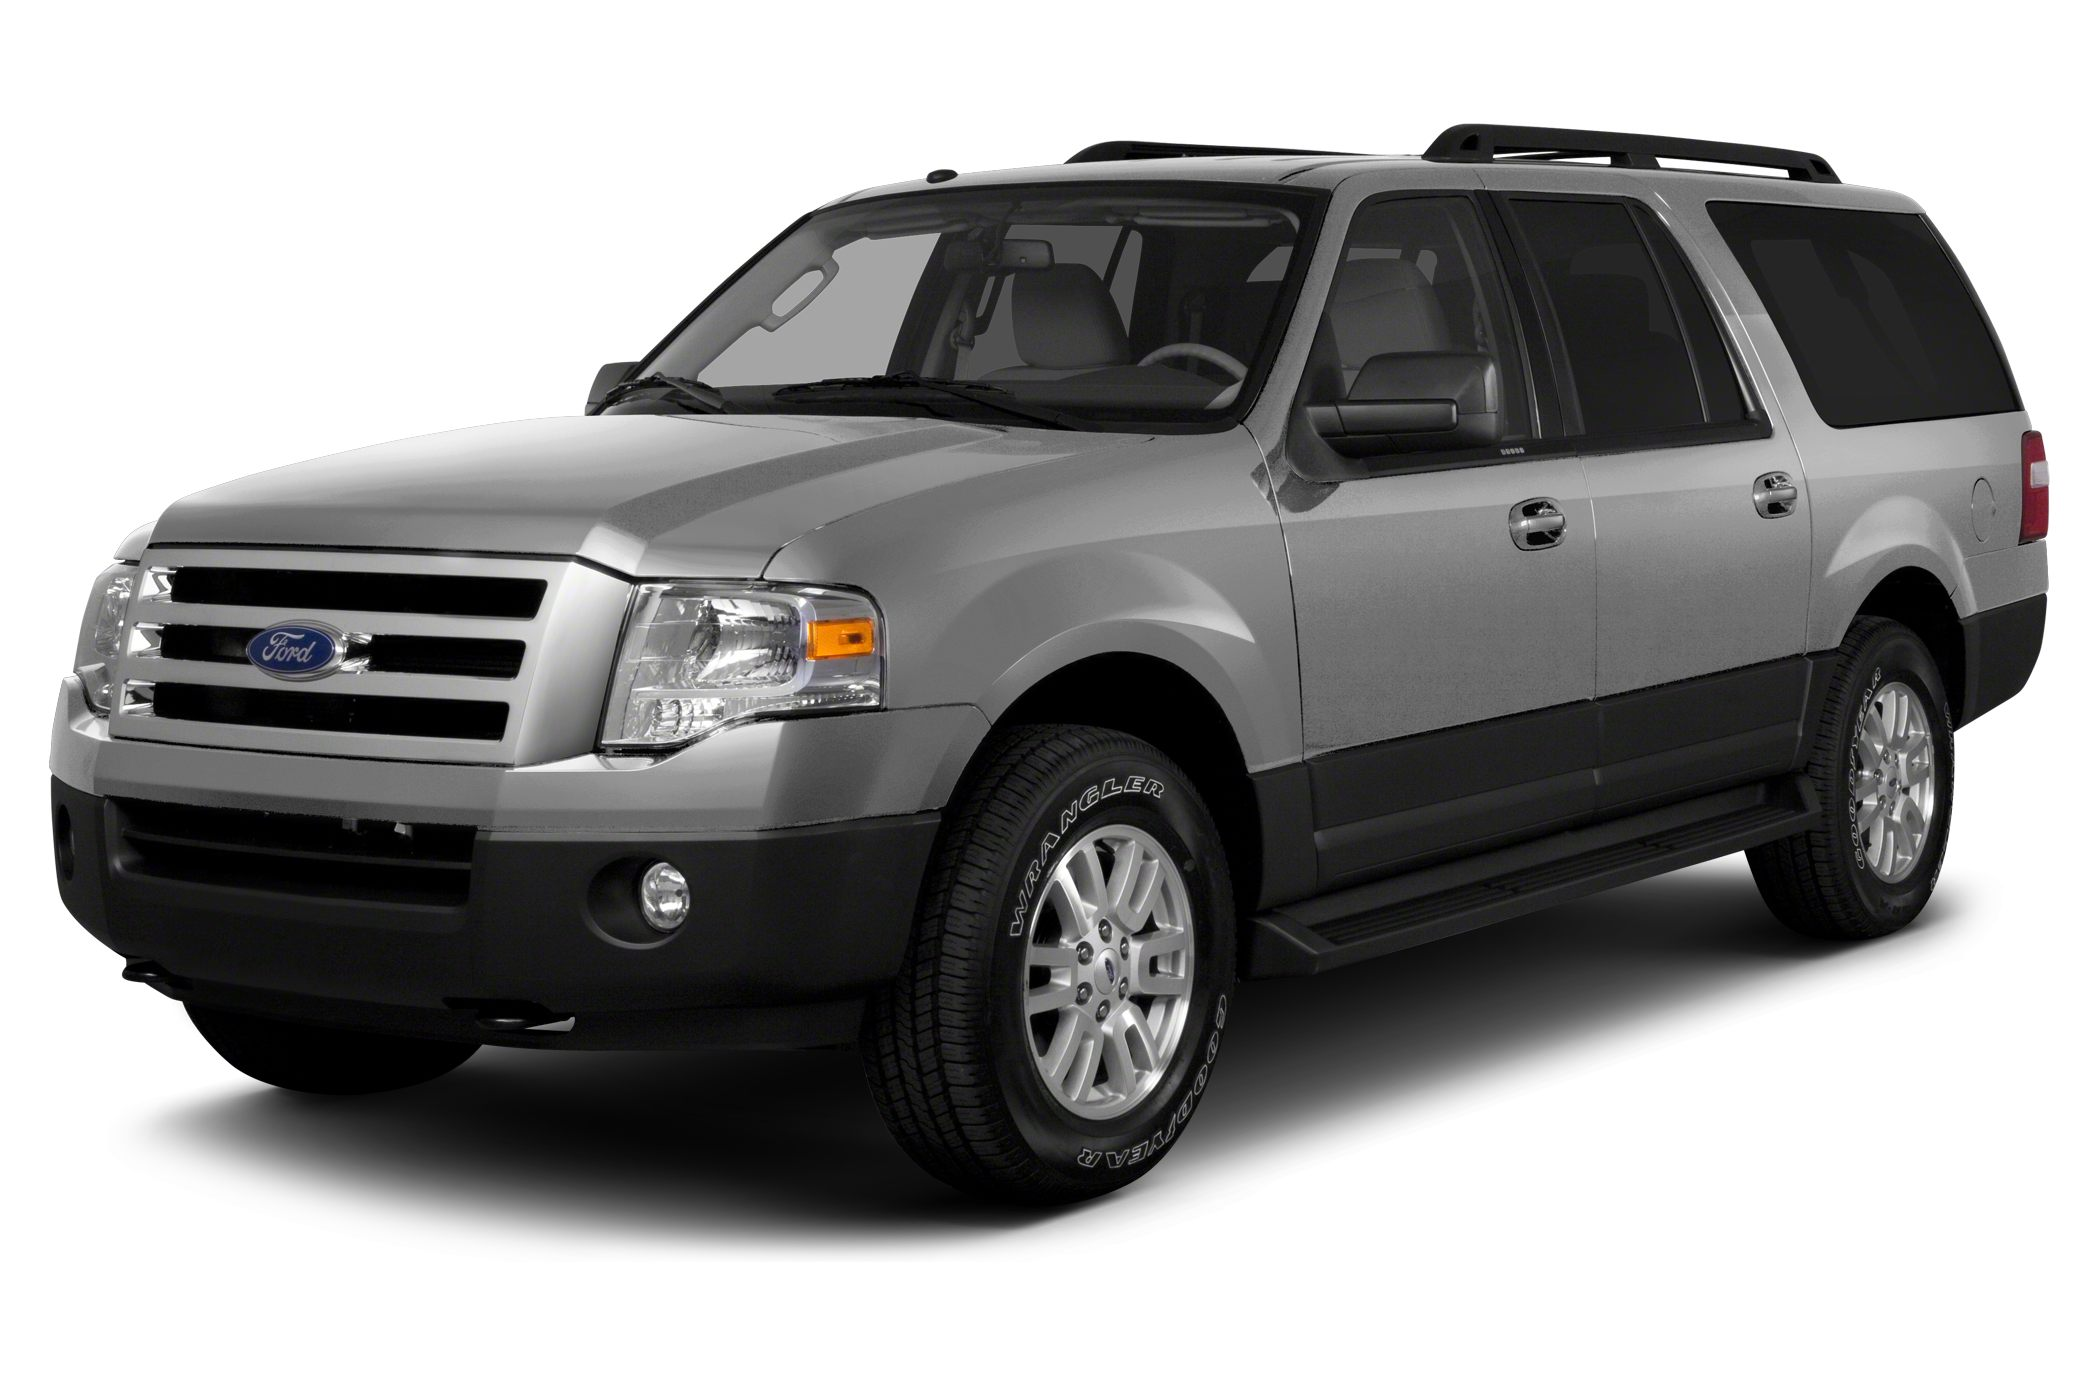 2014 Ford Expedition EL XLT SUV for sale in Edenton for $31,999 with 31,286 miles.